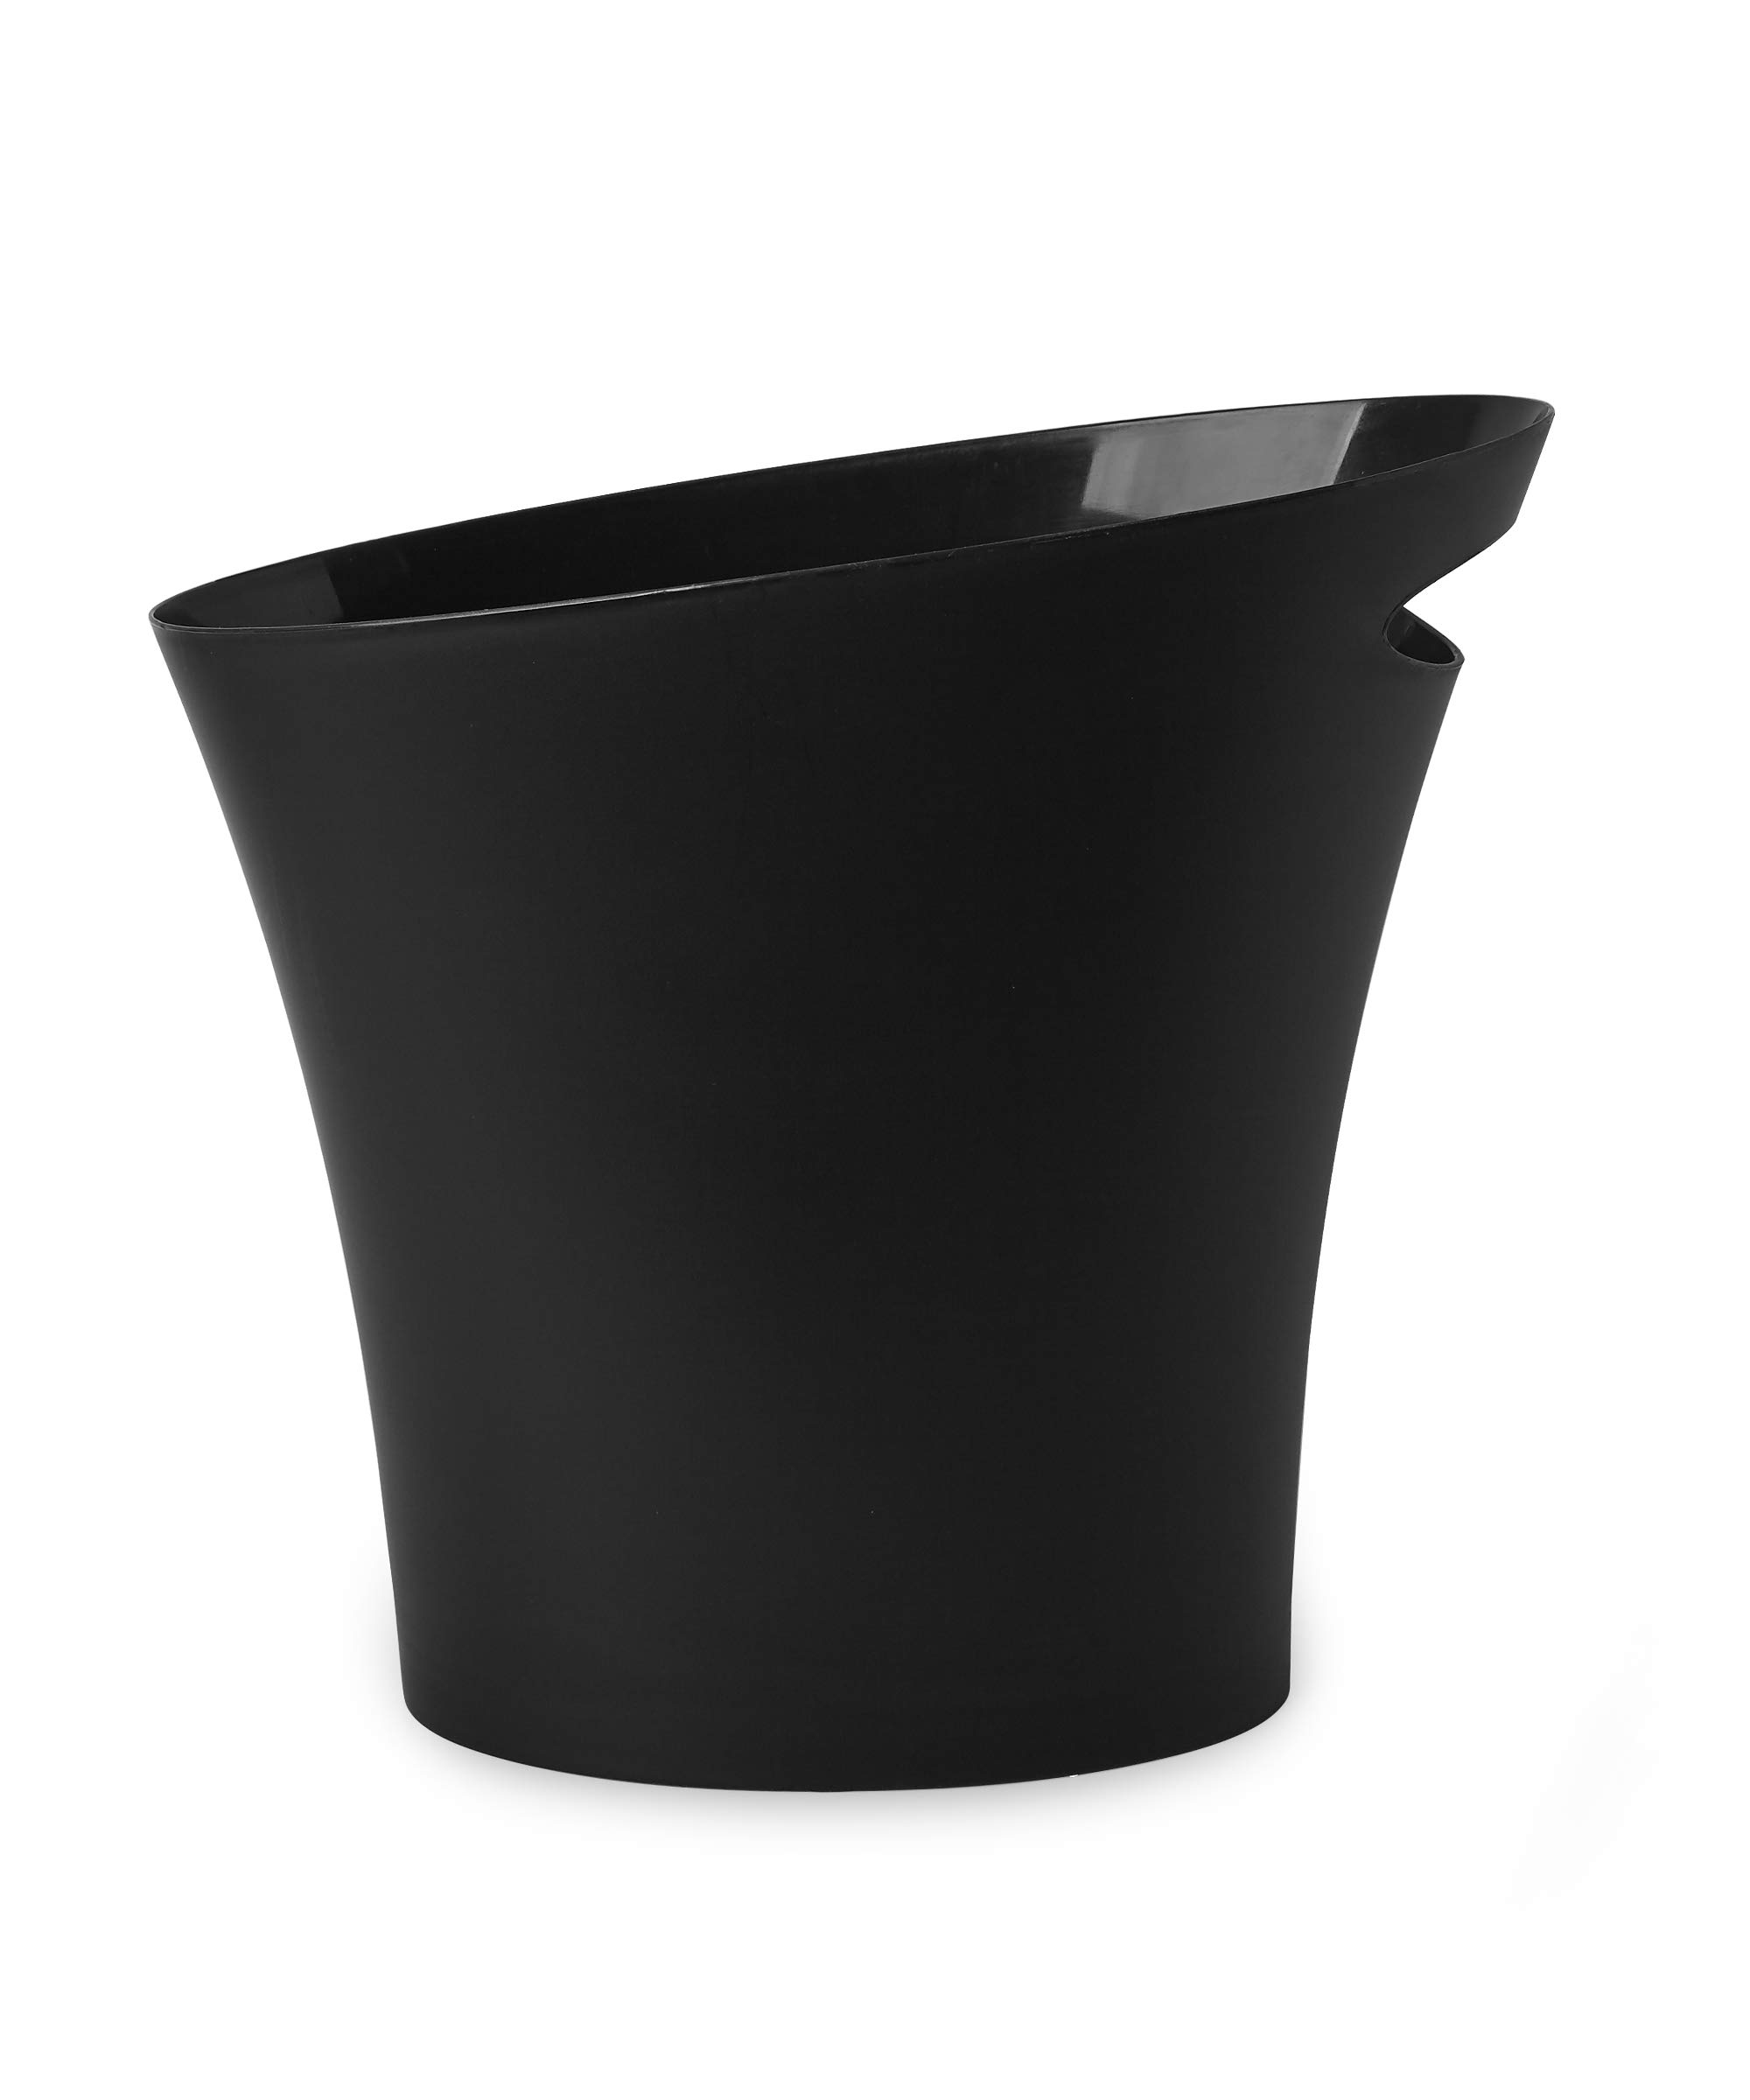 Umbra Skinny 5 FITS ALMOST ANYWHERE: A stylish trash can with a modern slim design that looks great and easily fits into narrow openings and odd spaces in your bathroom, bedroom or office CLEVER DESIGN: Despite its narrow profile, Skinny trash can hold up to 2 gallons and features an integrated handle for easy transport and disposal of contents making it an ideal trash can for bathroom DURABLE & EASY TO CLEAN: Made of super-strong polypropylene, Skinny trash cans are durable, easy to wipe clean with a damp cloth, and features a rounded bottom with no crevices for dirt, grime, or liquids to get trapped in